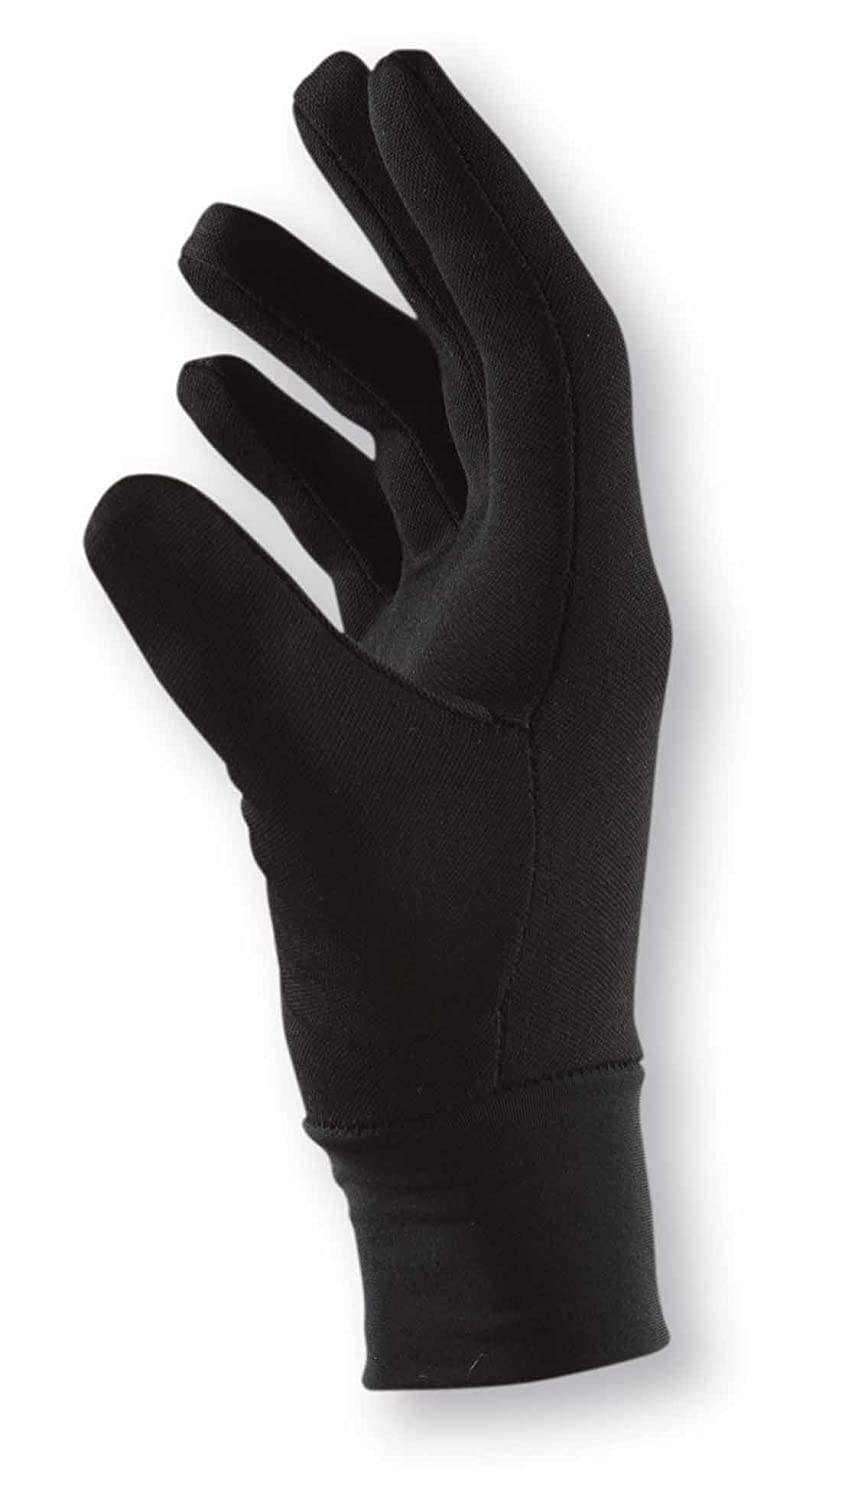 Chaos -CTR Stealth Outlast Heater Glove Liner, Black, Large/X-Large 9G3-1210-Black-L/XL